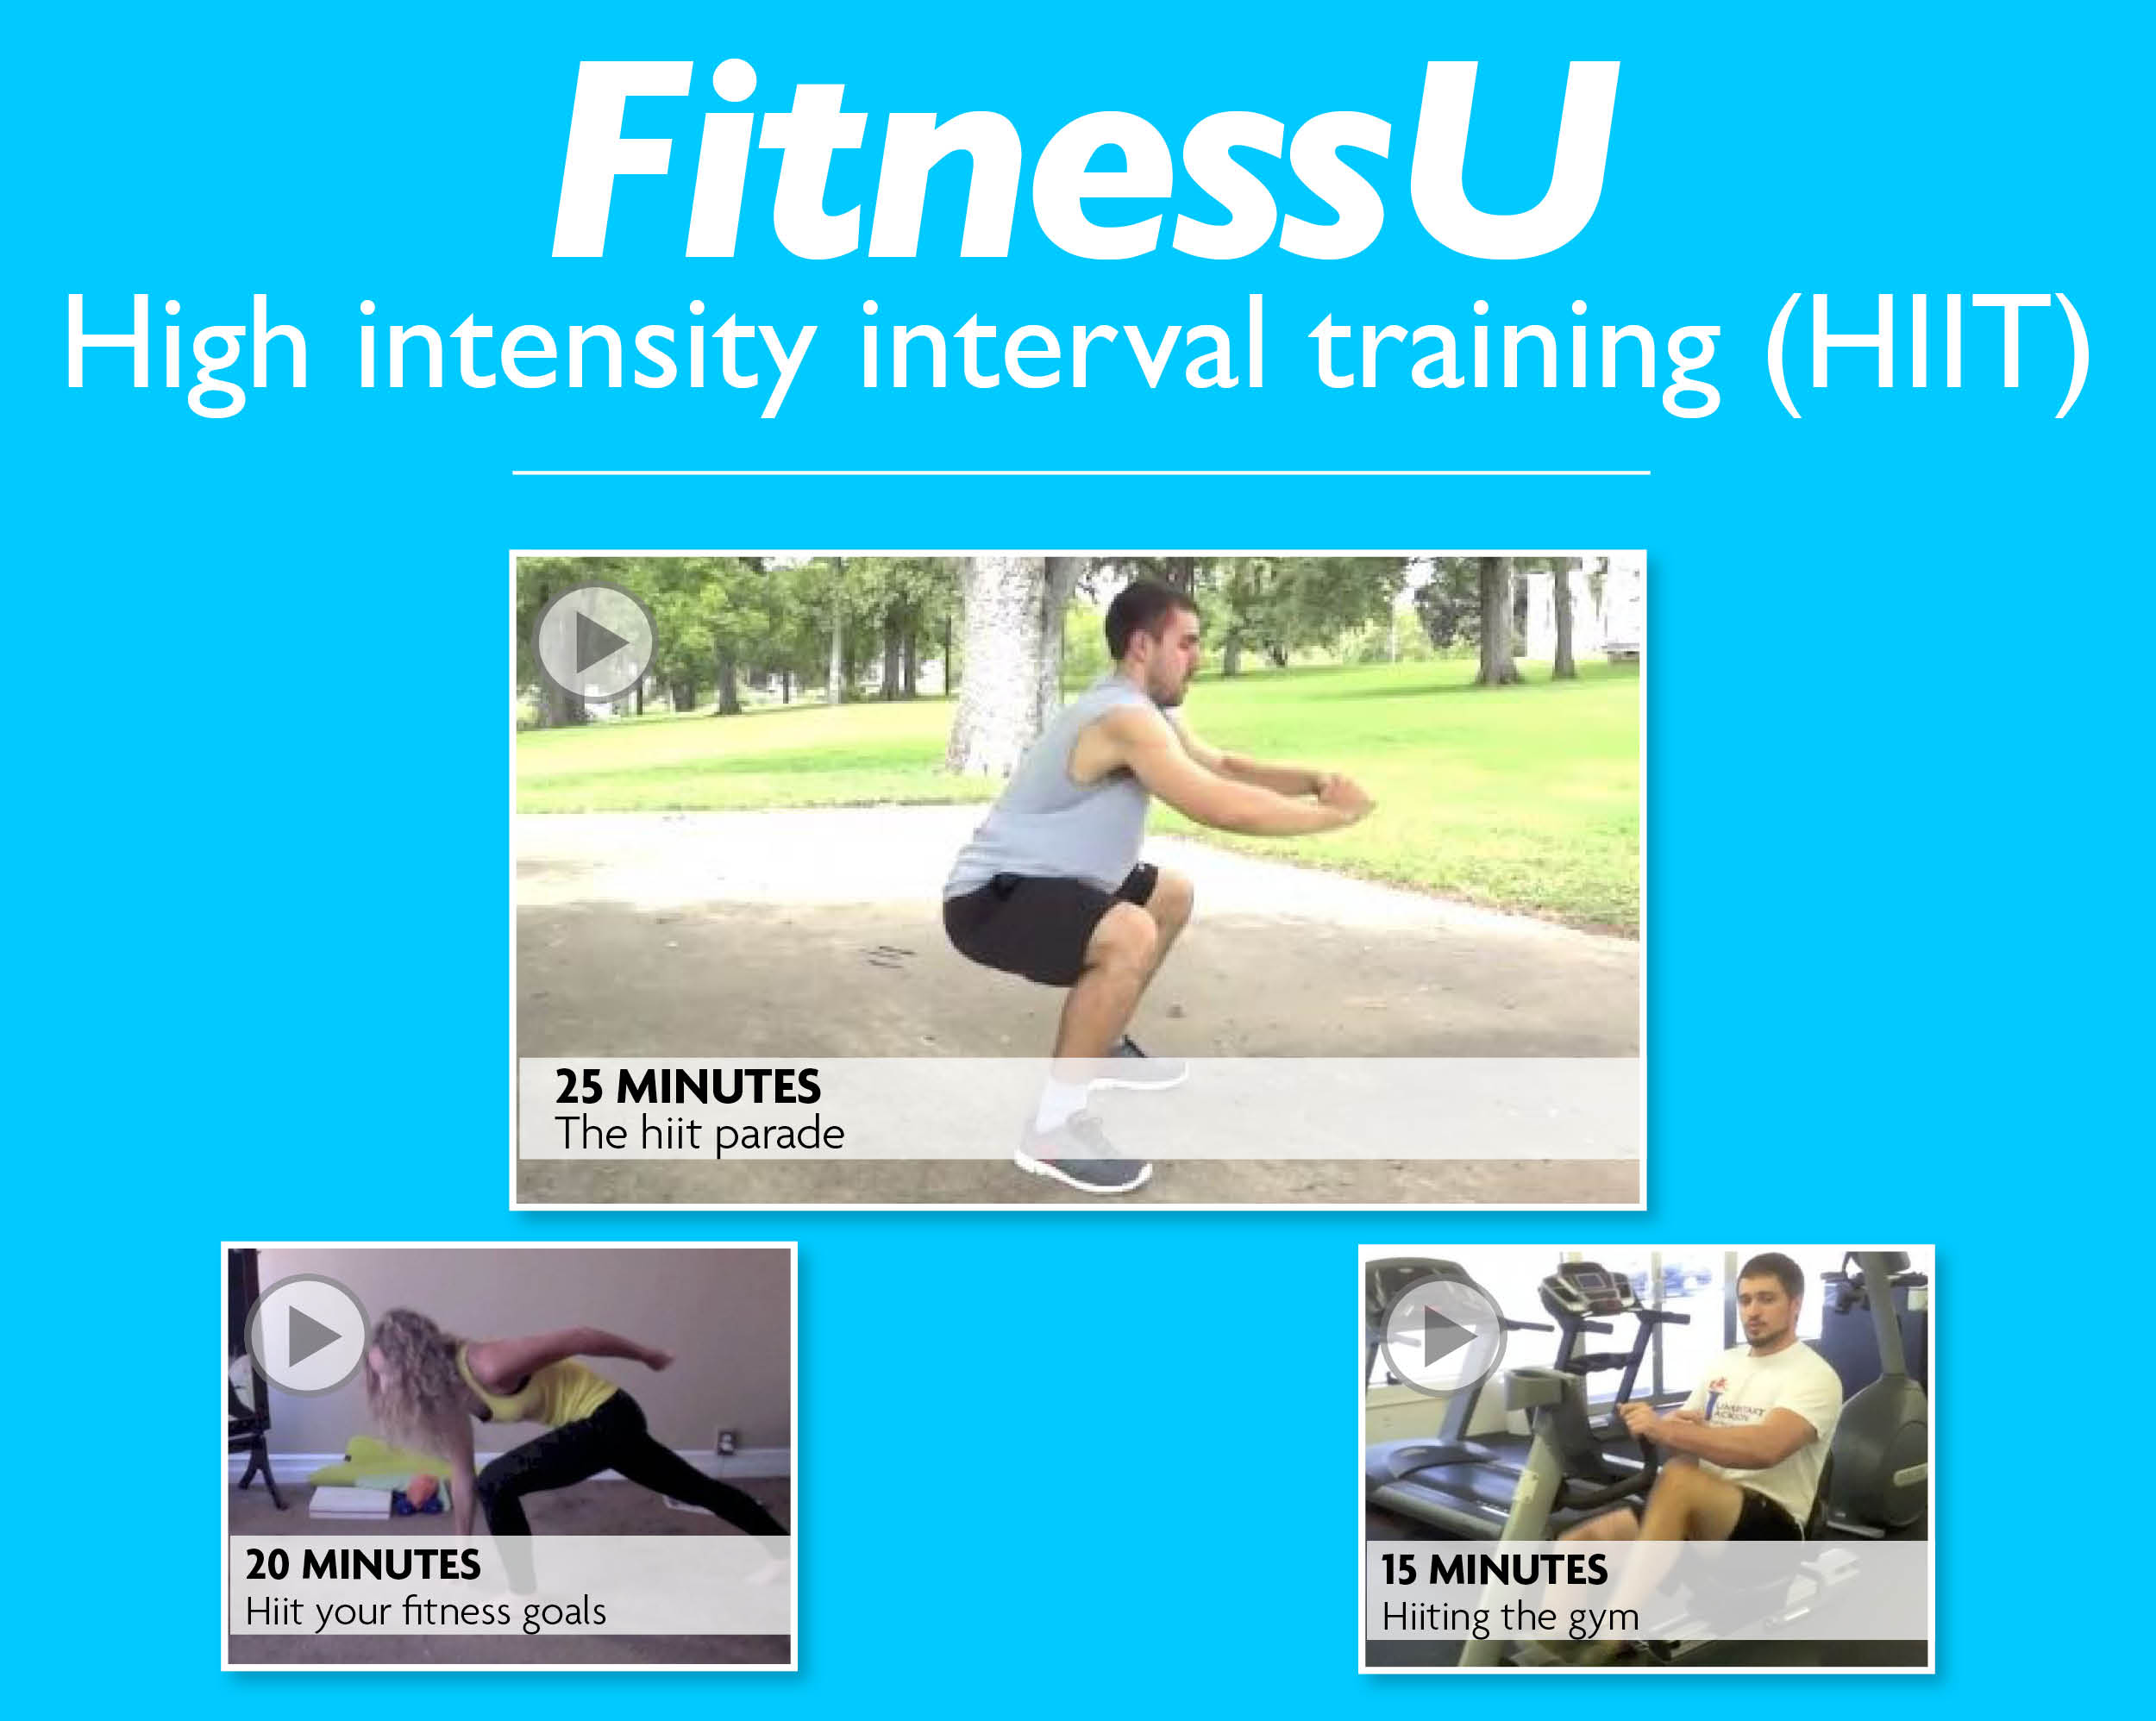 FitnessU: High intensity interval training (HIIT)